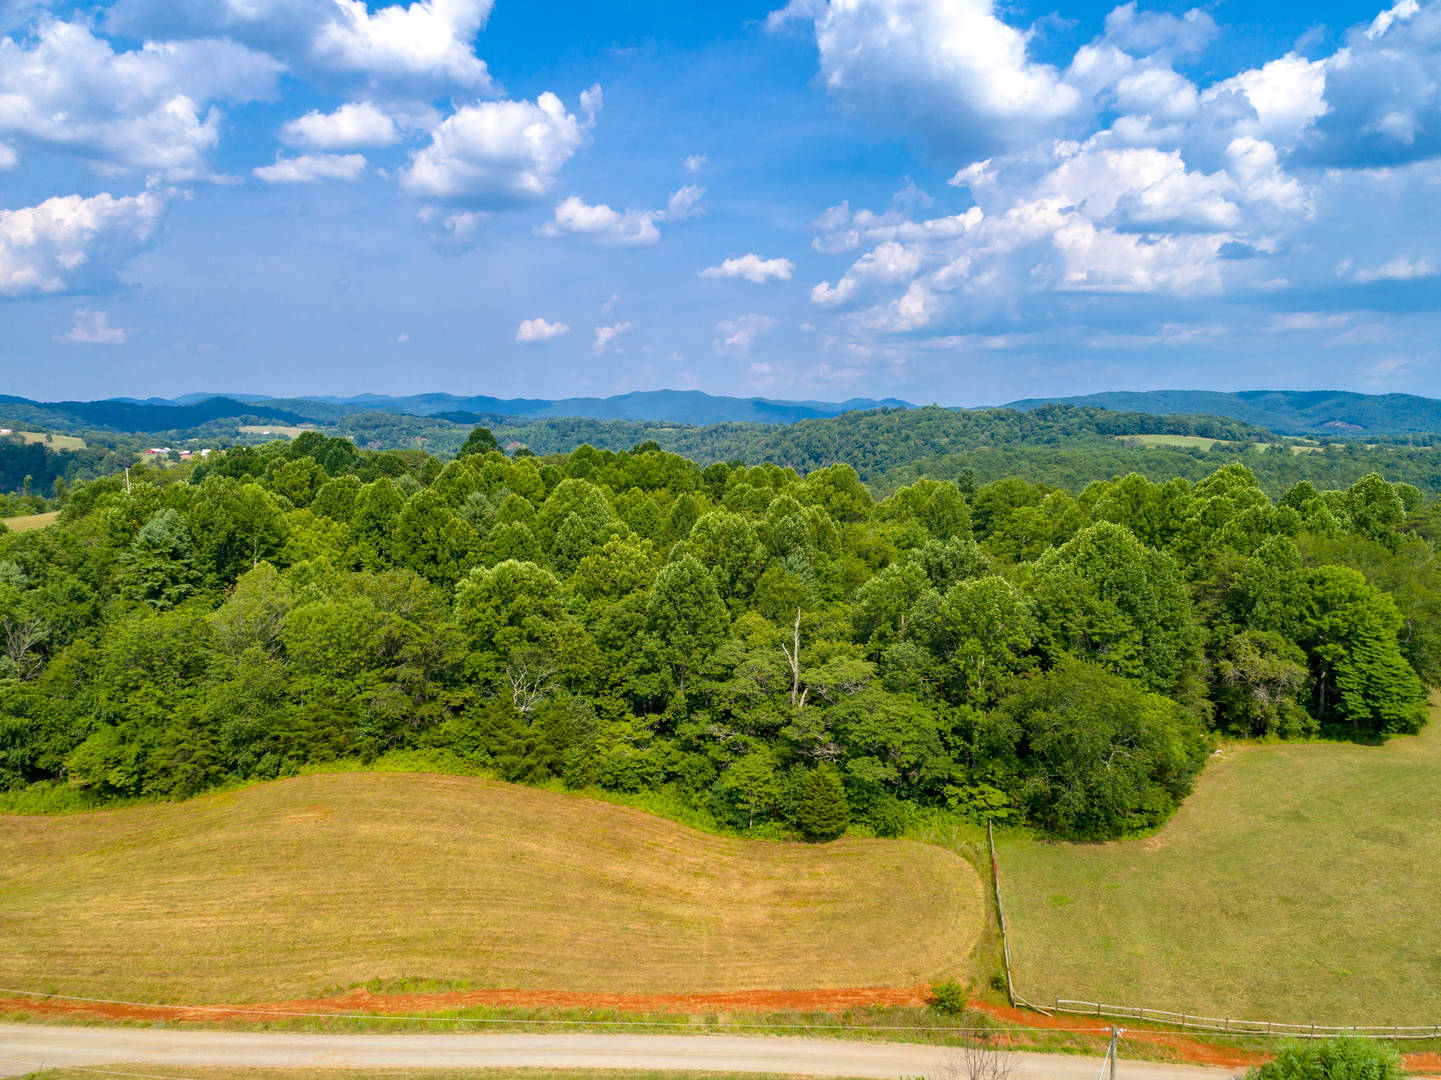 Lot 11 - Bald Meadow Lane Barren Springs, VA 24313